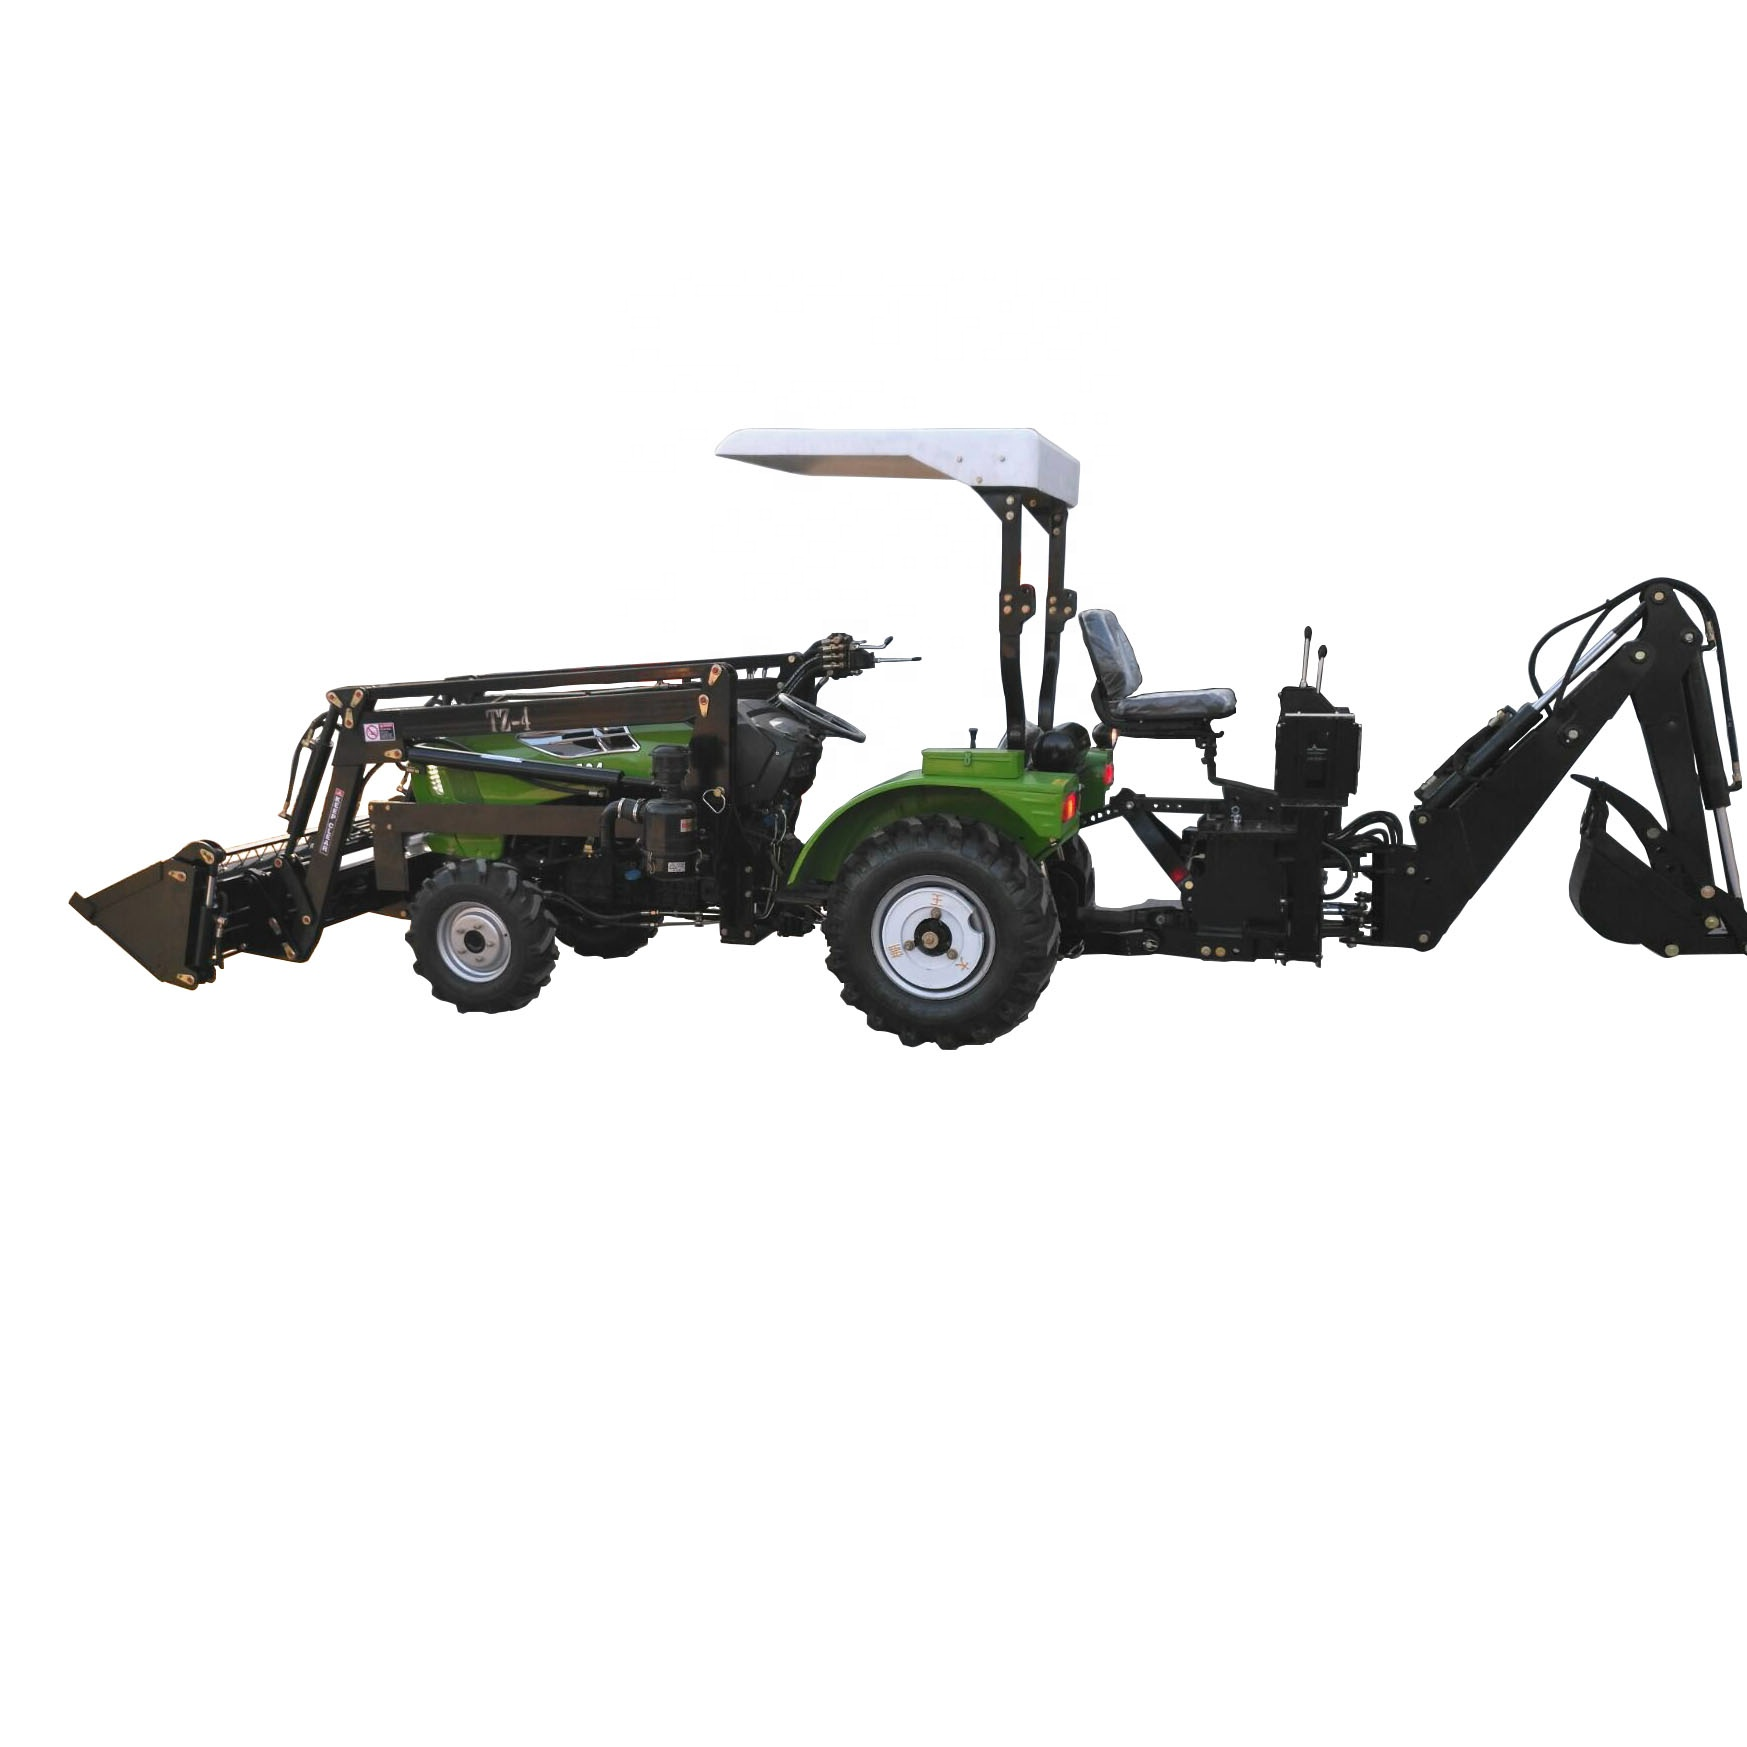 Agricultural Used Mini Tractor With Front End Loader And Backhoe From China Factory Supply